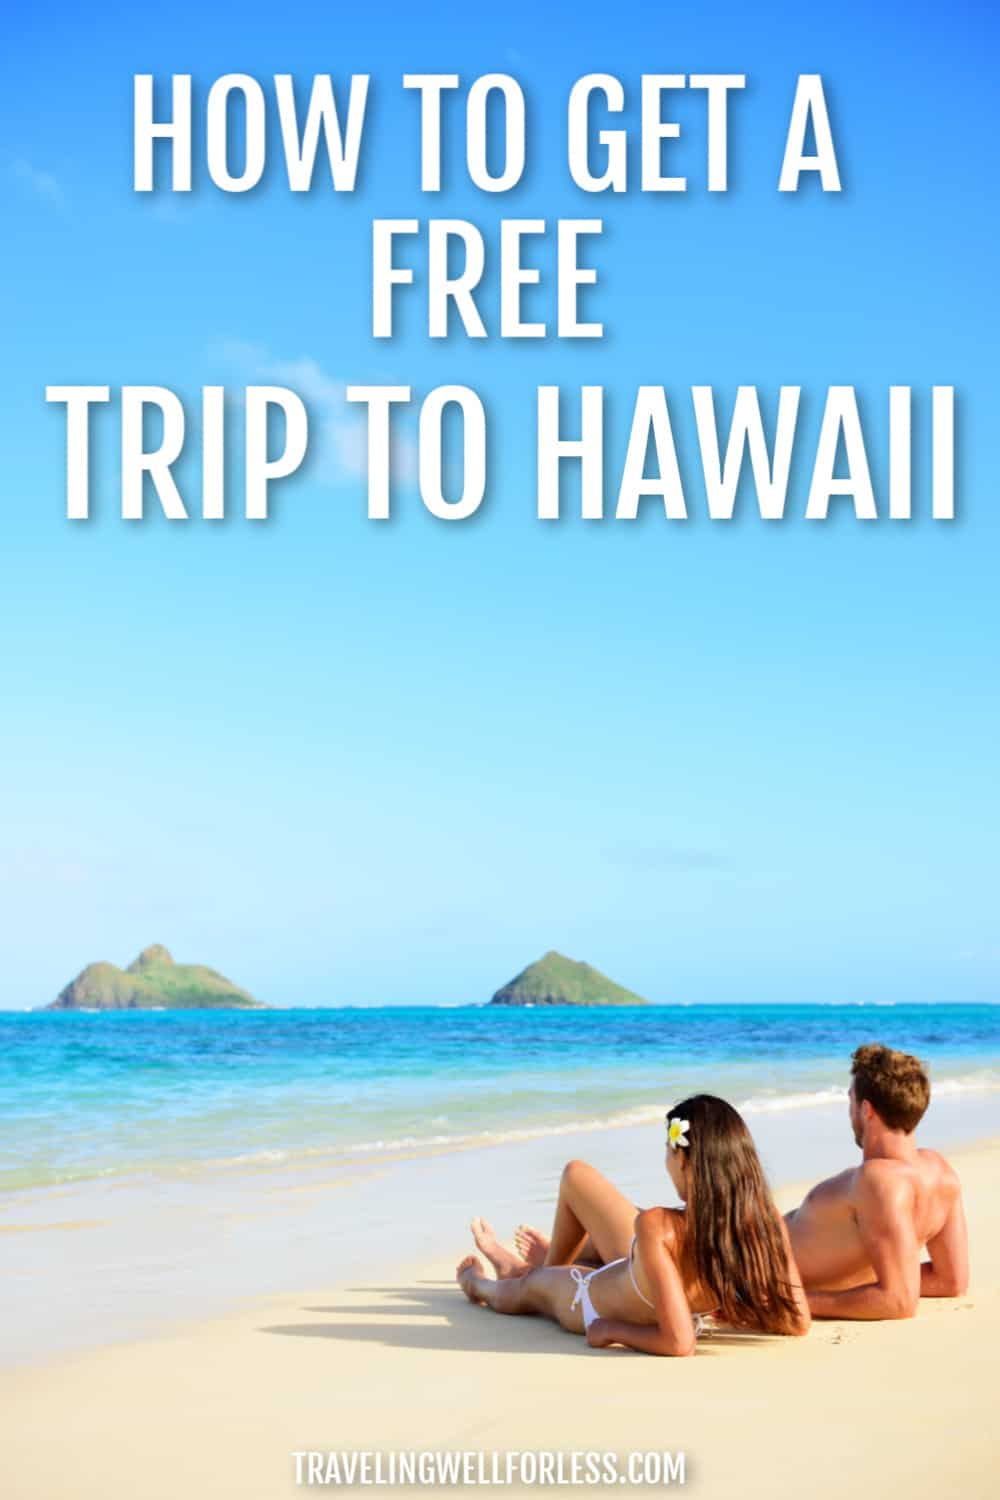 couple lying on beach in Hawaii who got a free tip to Hawaii